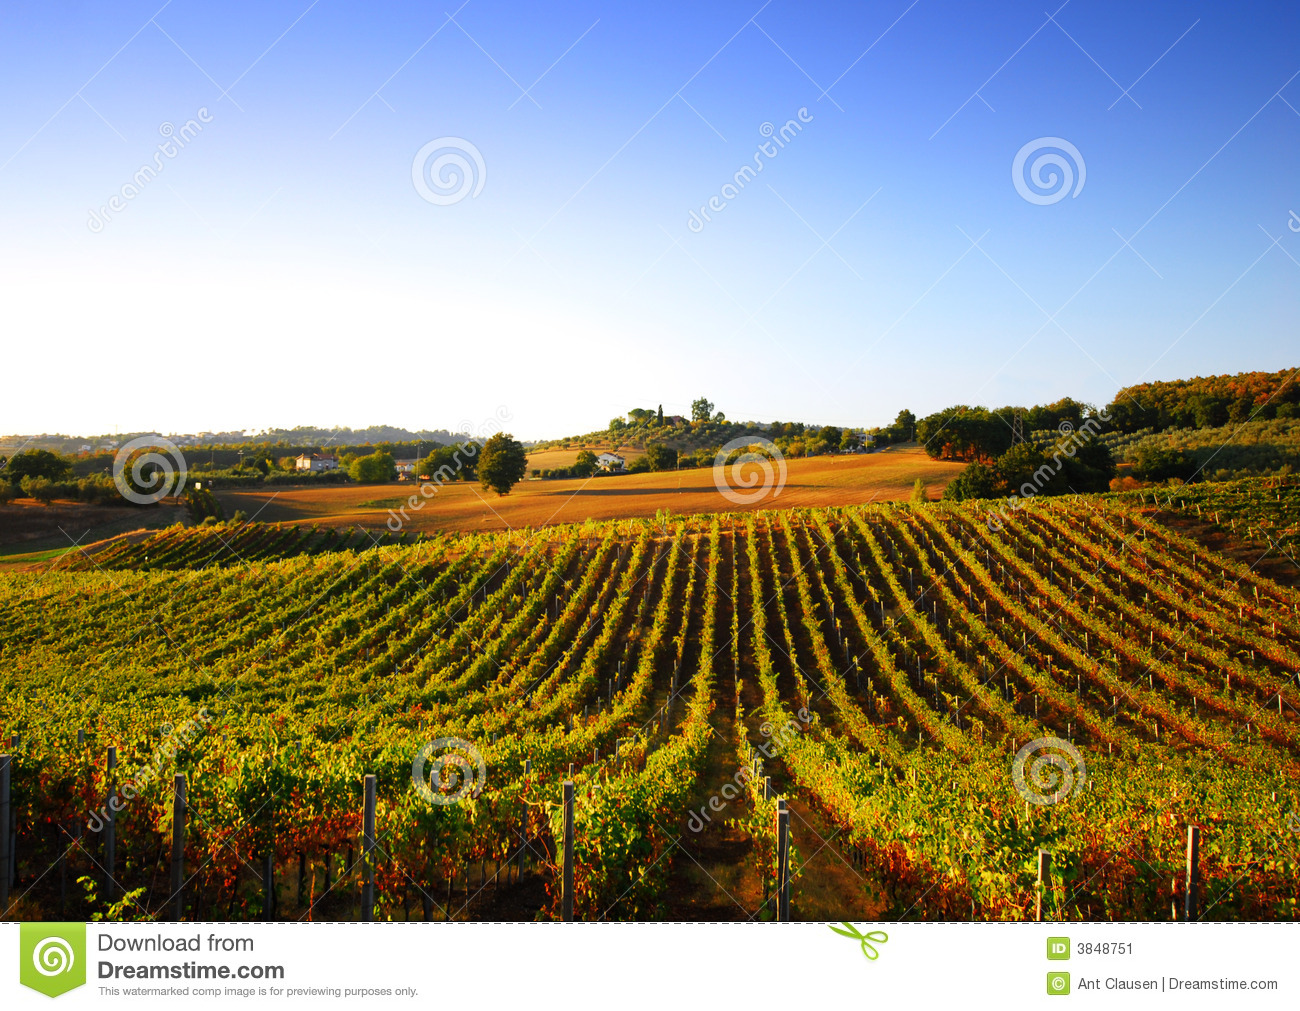 Vineyard in Italy